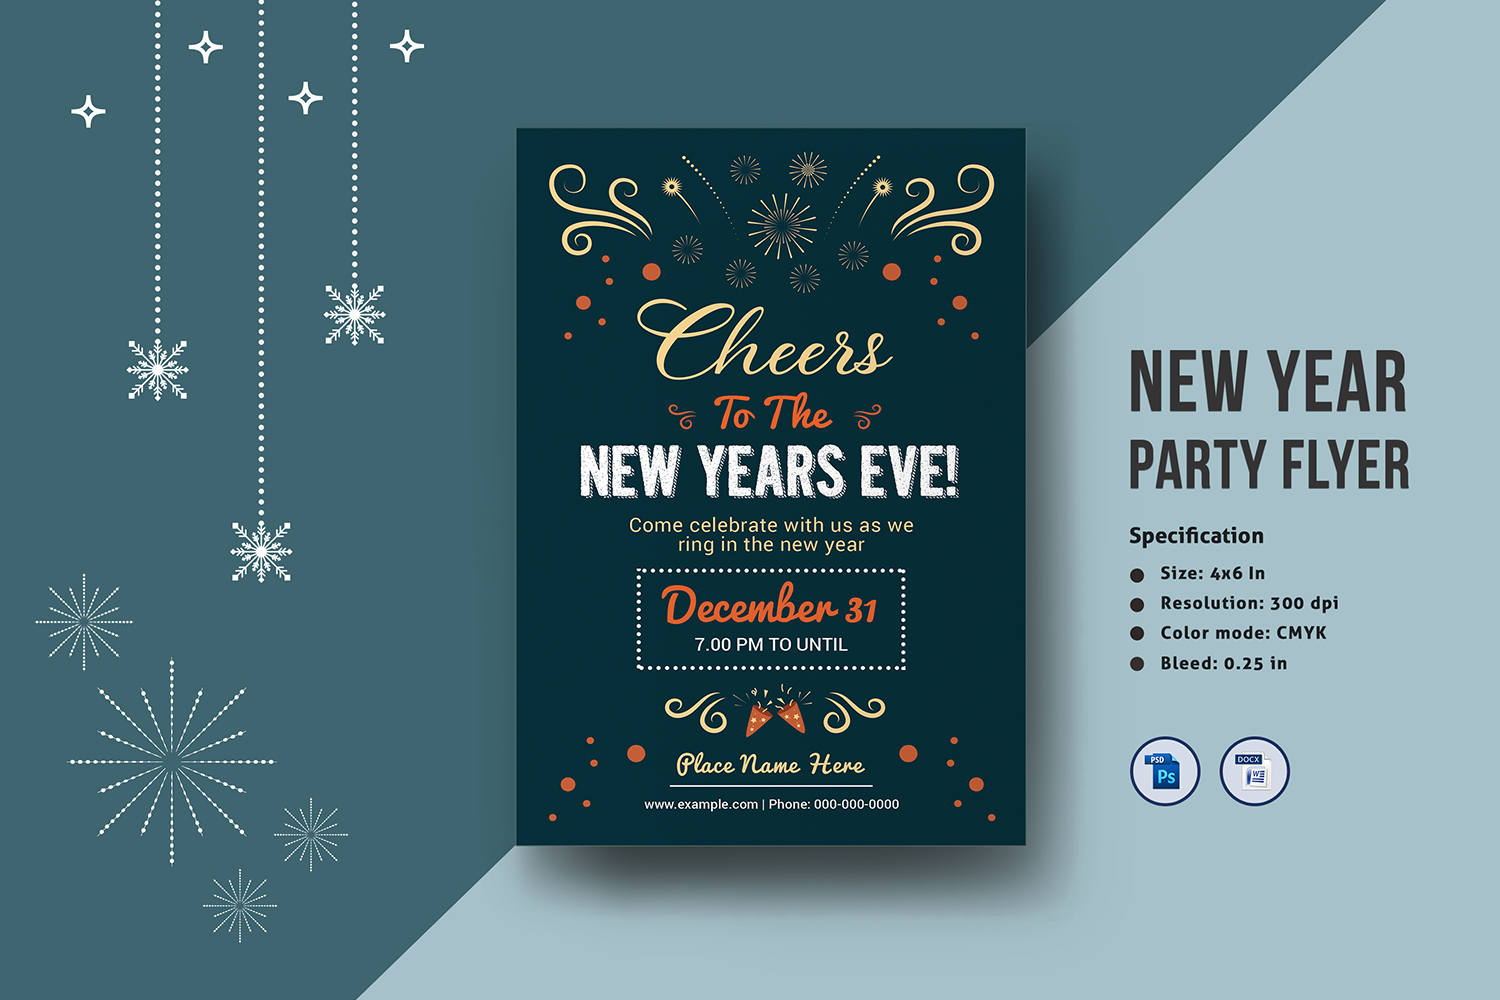 Printable New Year Party Flyer example image 1